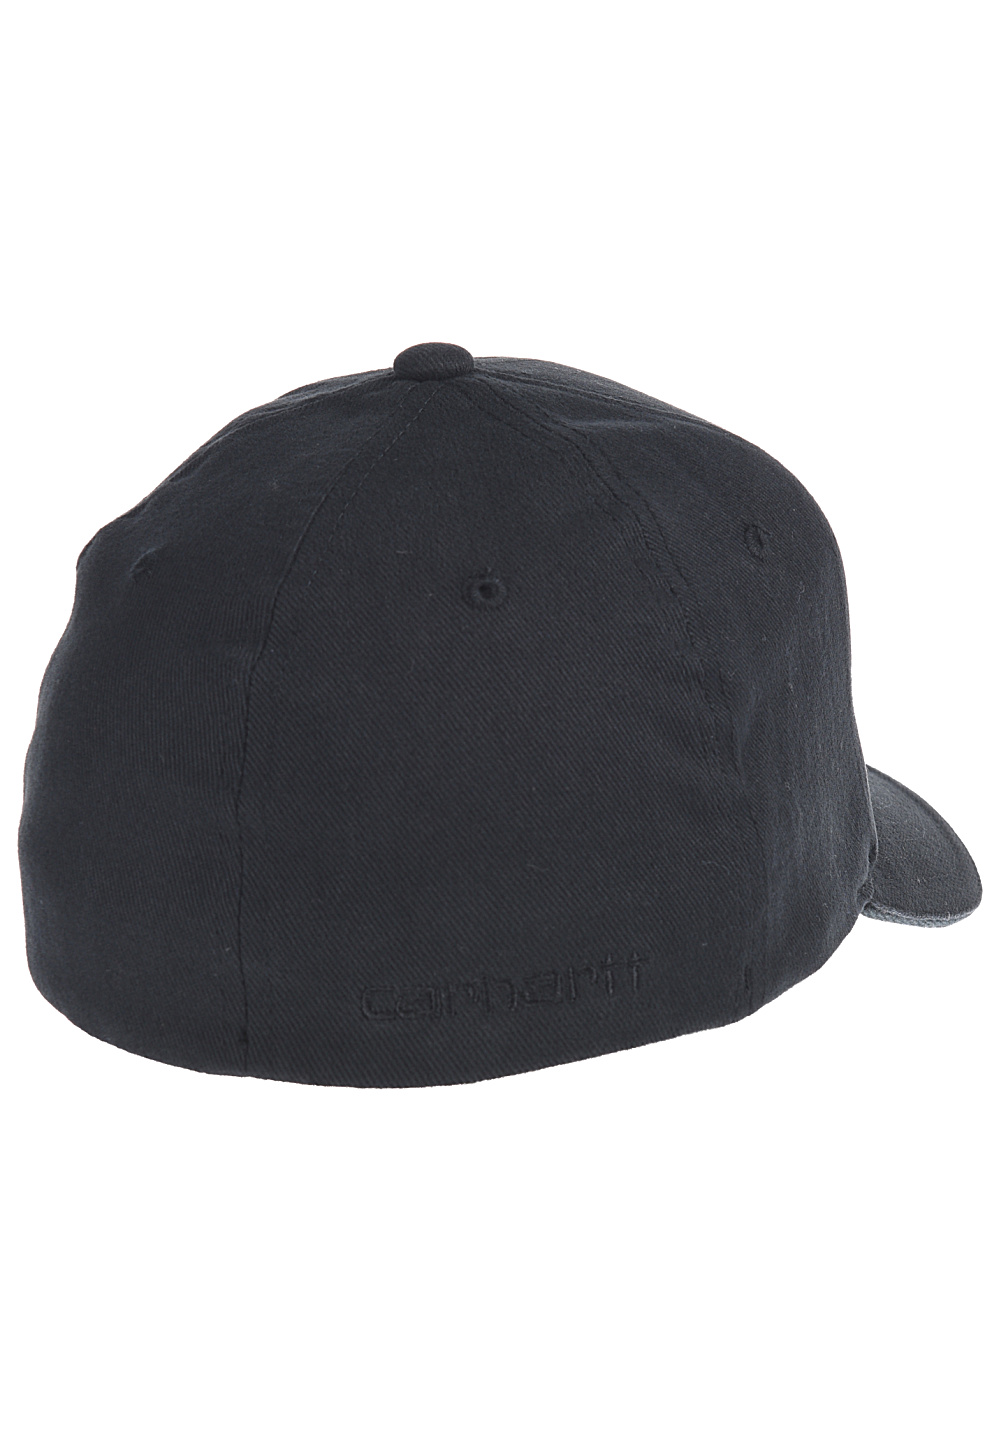 9c16f90ac326d ... carhartt WIP Match - Flexfit Cap for Men - Black. Back to Overview. 1   2  3  4. Previous. Next